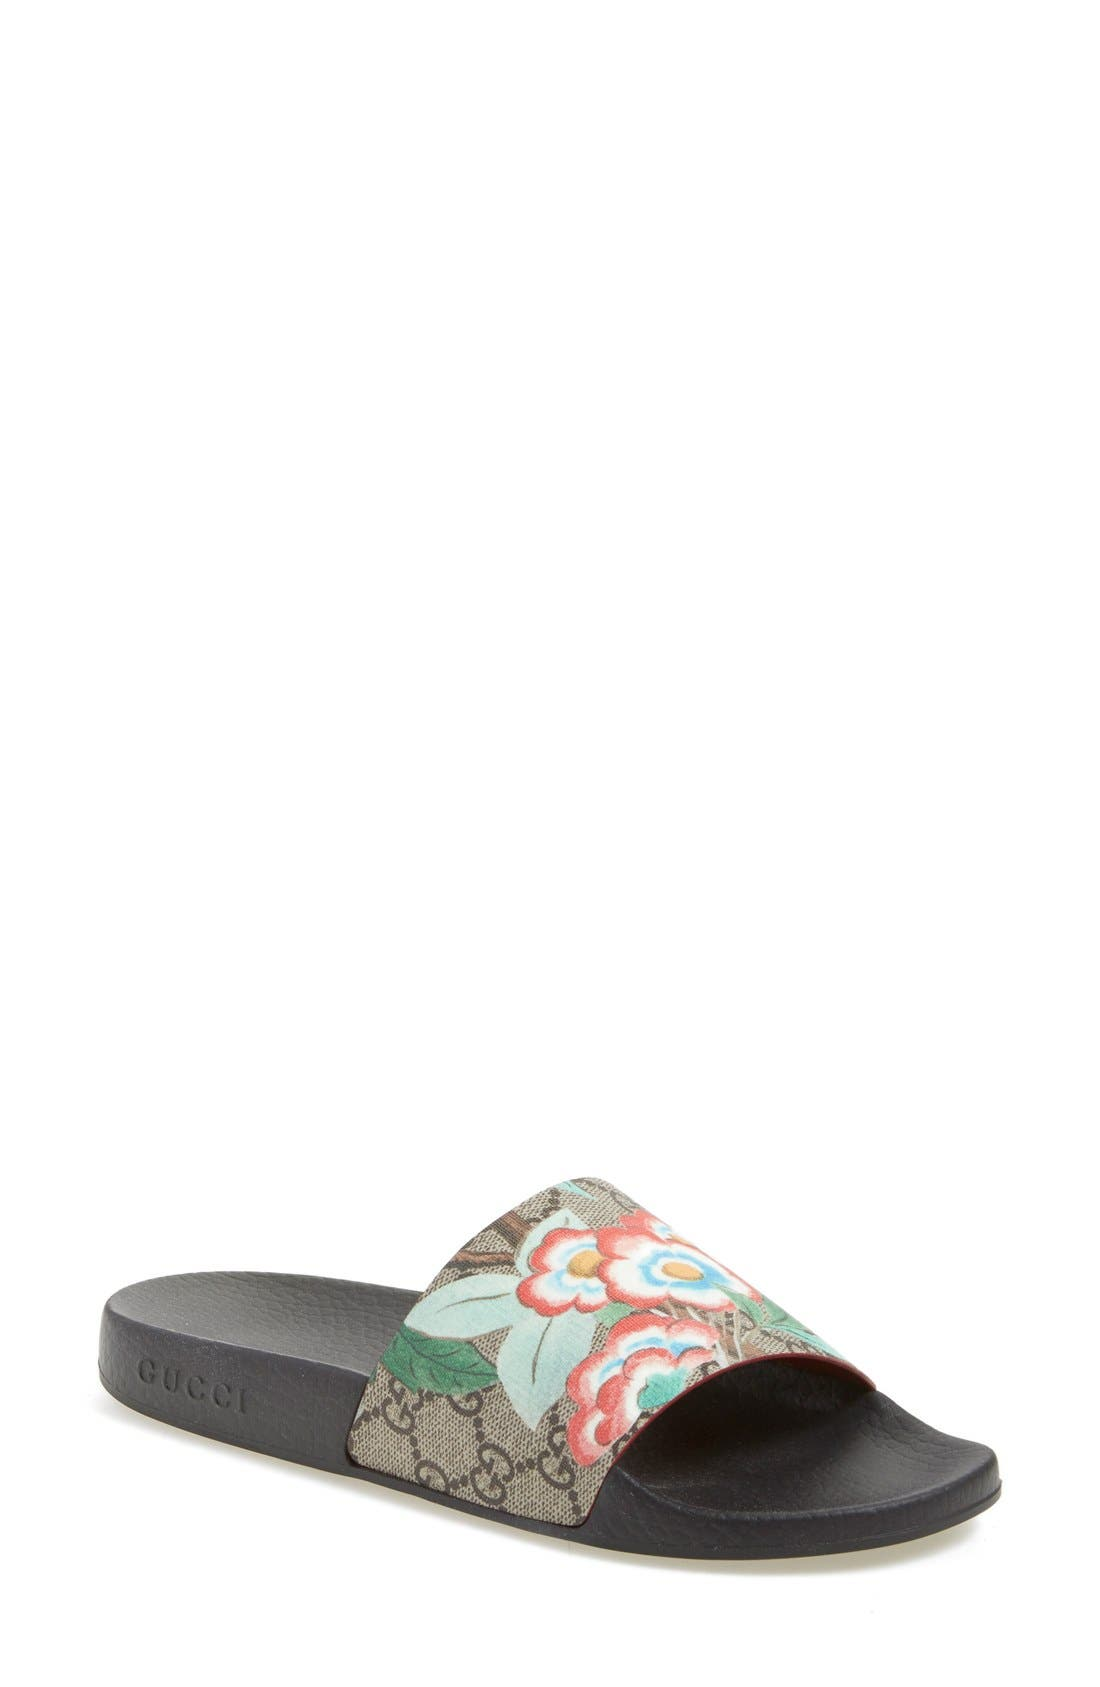 Pursuit Floral Logo Slide Sandal,                         Main,                         color, 283